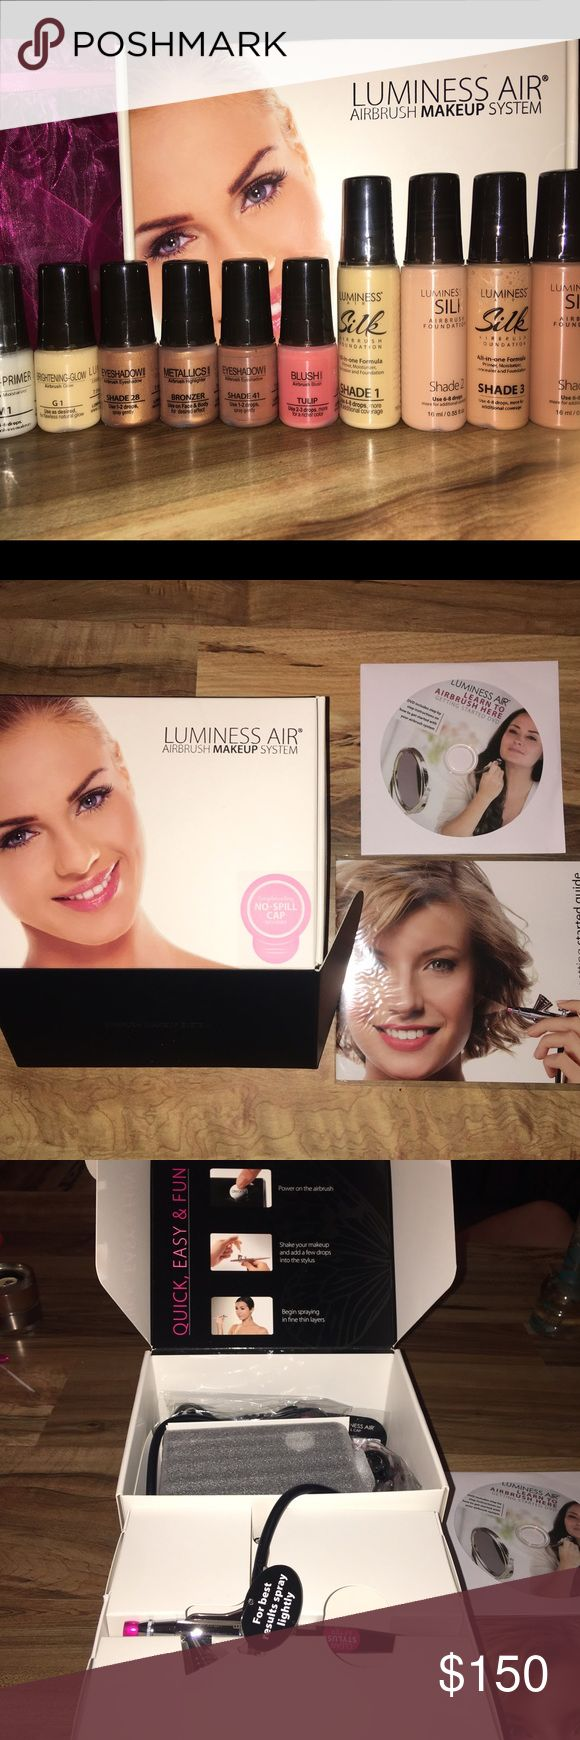 ❤️Luminess Air Airbrush System with Makeup Bundle ❤️Luminess Air Airbrush System with Makeup Bundle used once to try but decided it's too time consuming and now I must sell!! It was a gift so please make me an offer and get yourself an awesome easy to use airbrush system with makeup included in this bundle!!  This is the starter kit so you have everything to get started!! Luminess Air Makeup